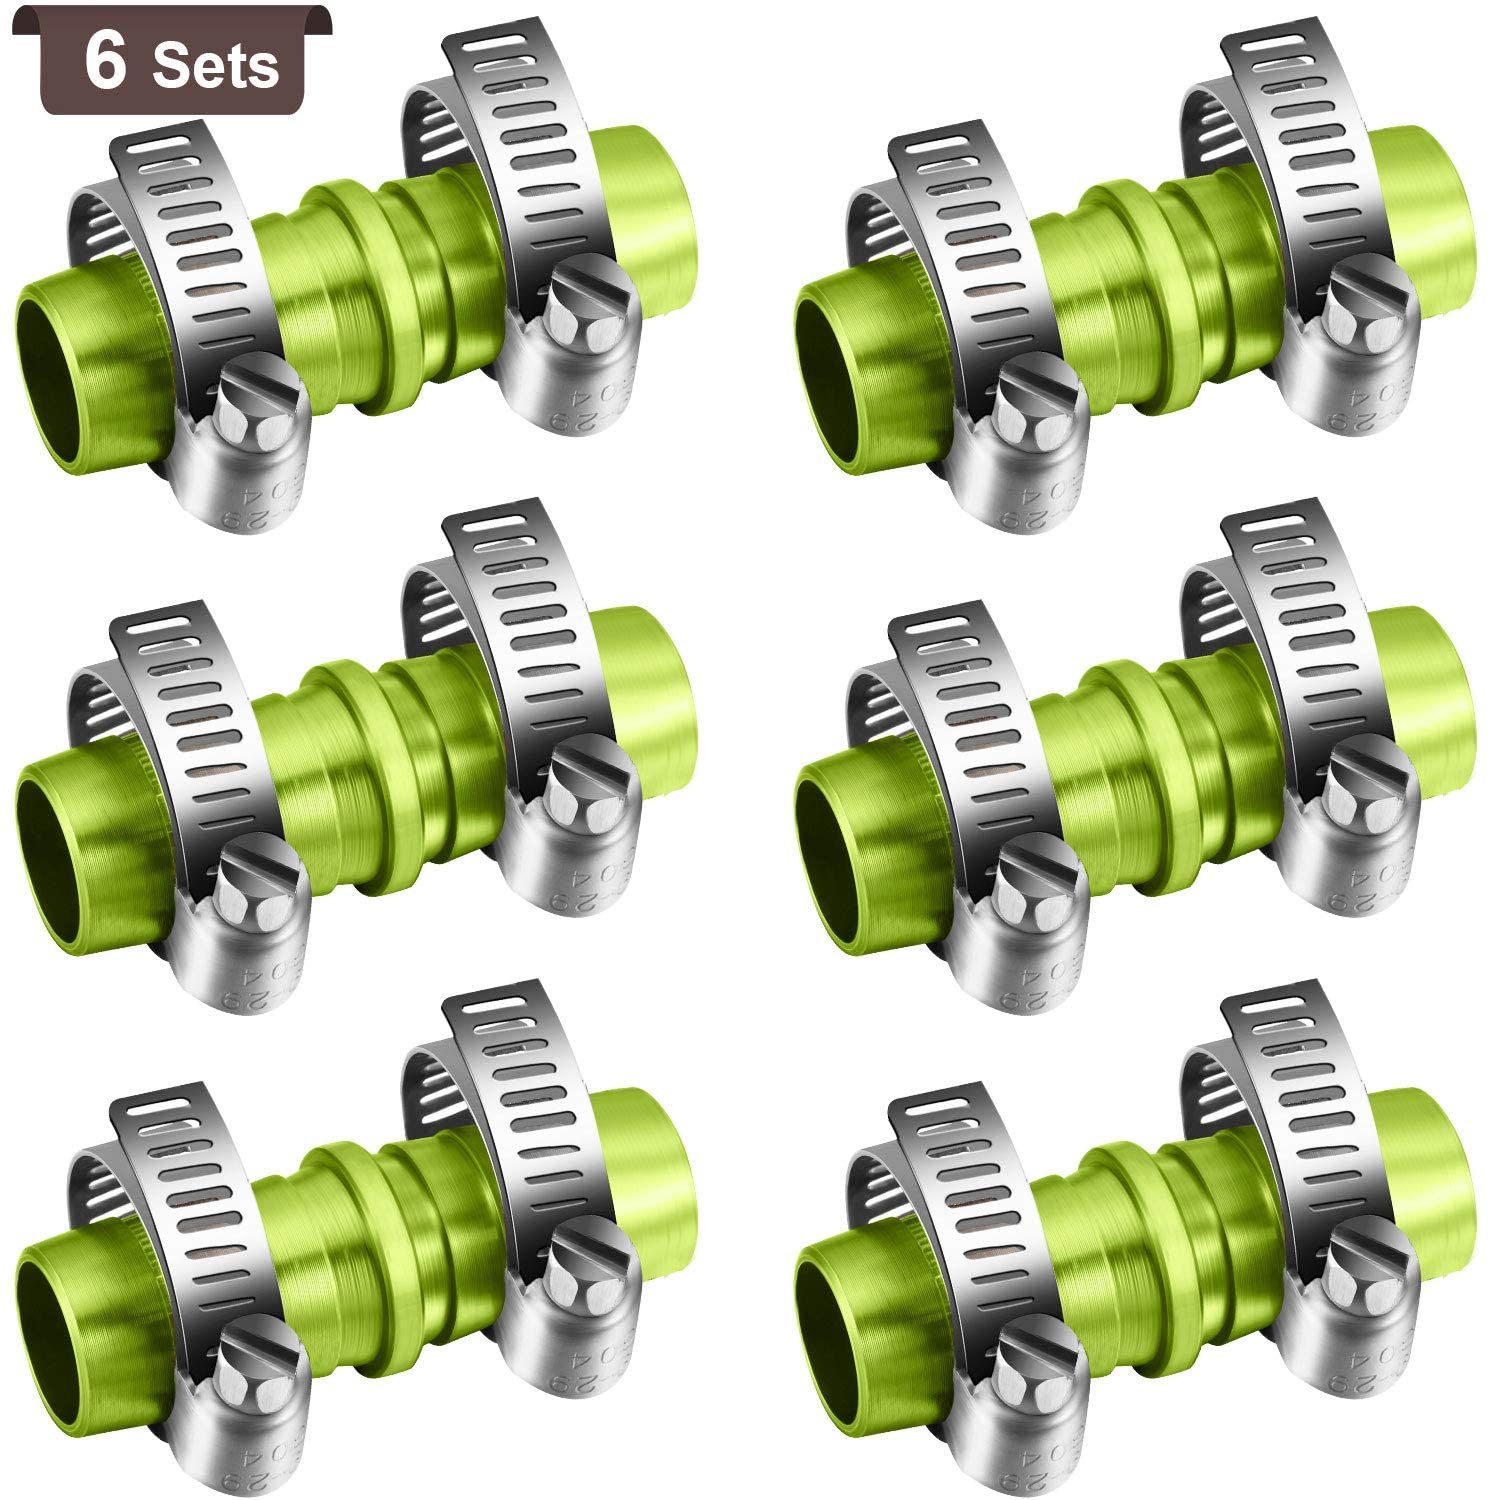 6 Sets 5/8 Inch Garden Hose Connector Hose Repair Kit Aluminium Water Hose Mender with 12 Pieces Stainless Steel Clamps for Hose End Repair Fittings